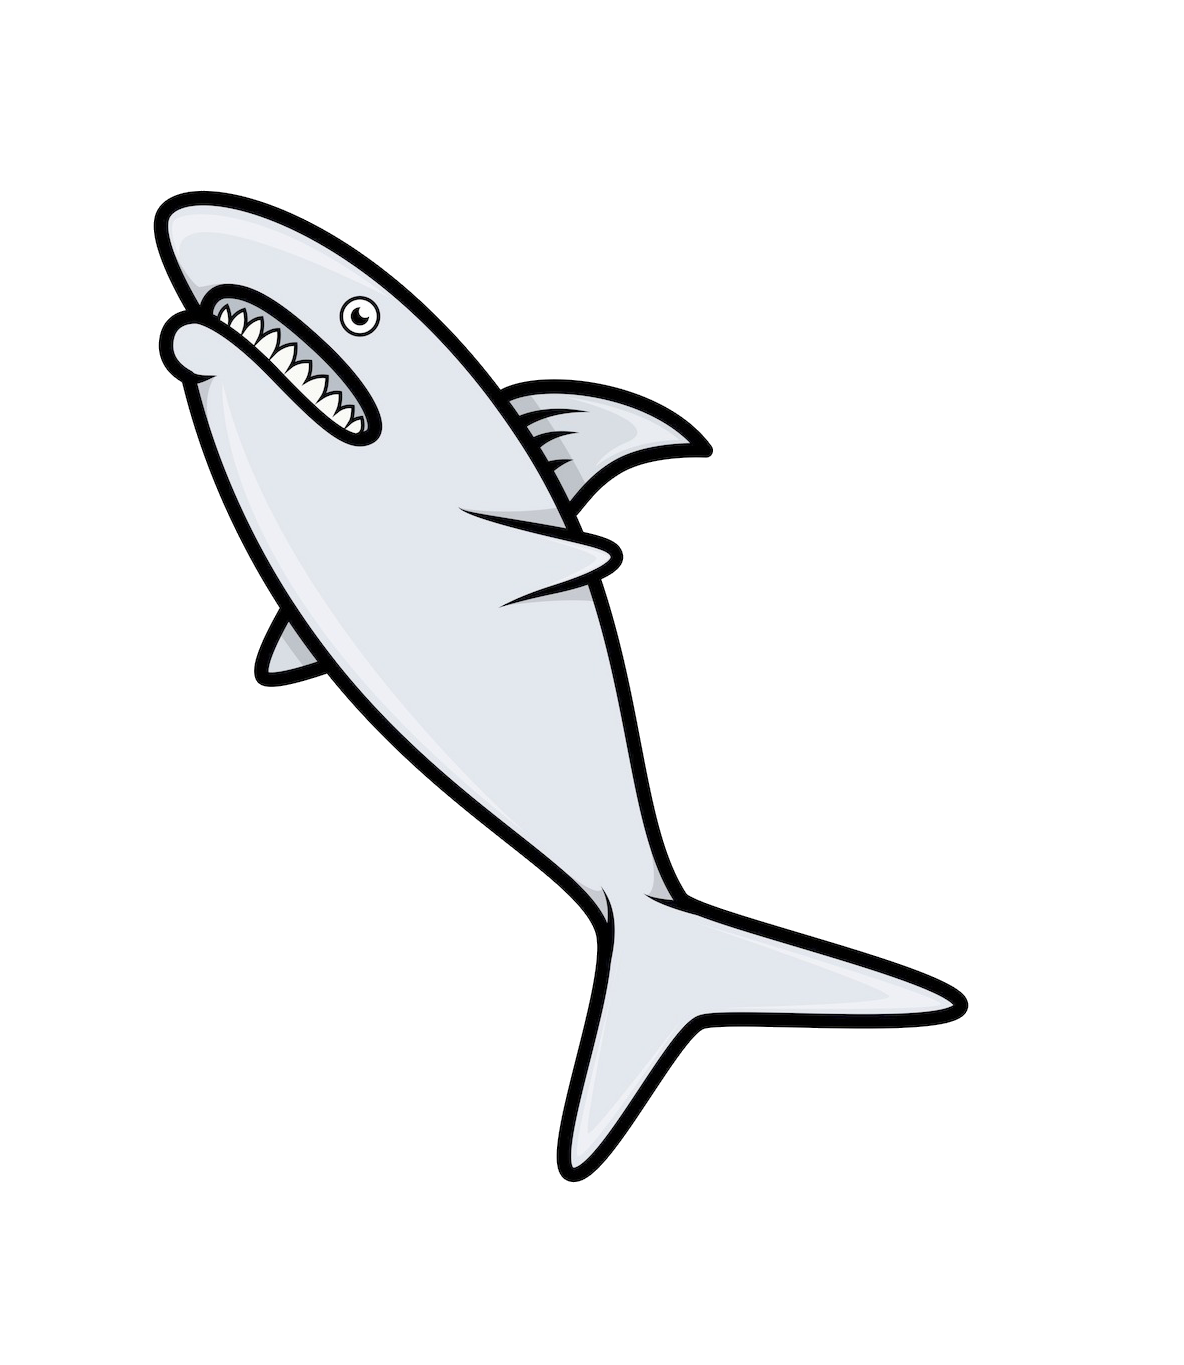 Porpoise drawing black and white. Fish royalty free illustration